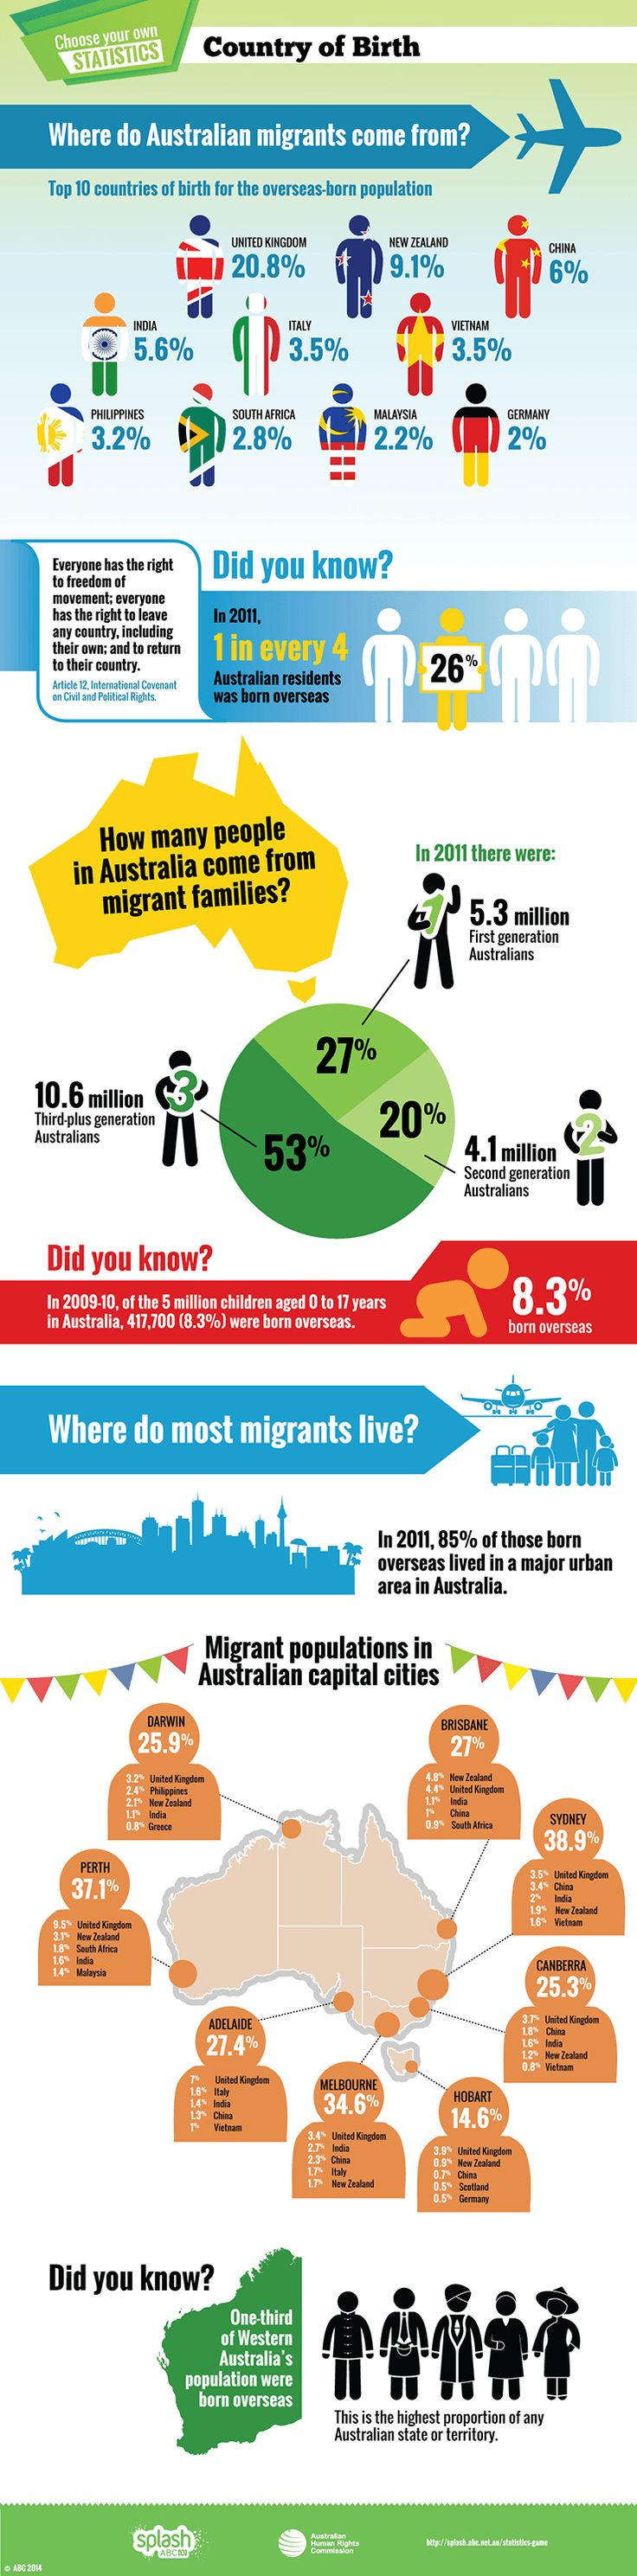 2. BACKGROUND INFORMATION Big Picture - Students to use the Interactive Graph to become informed with population, distribution and changes due to immigration.